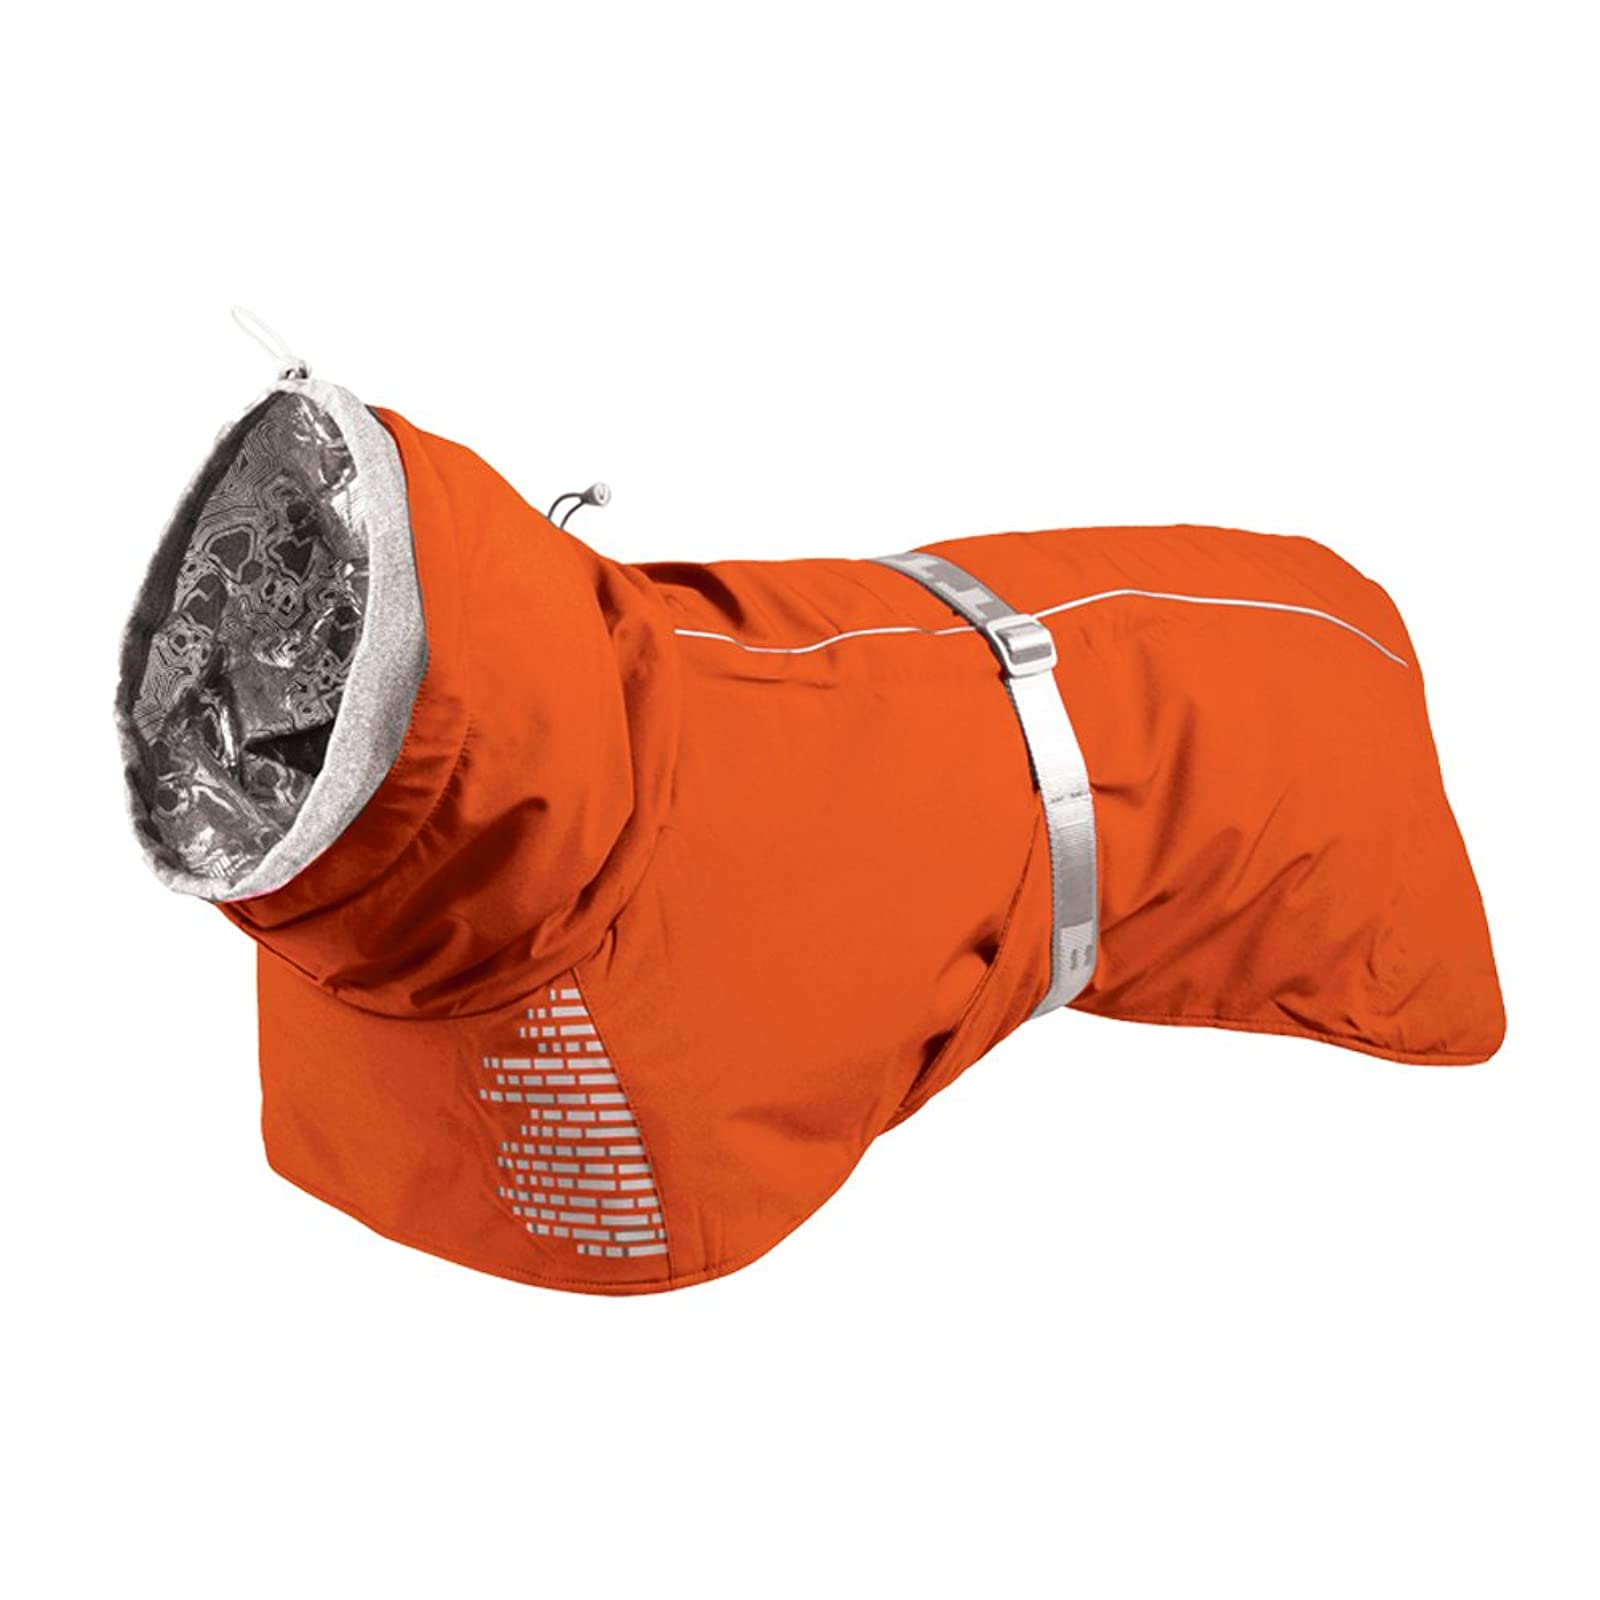 Hurtta Extreme Warmer Dog Winter Jacket Orange HU933014 - 8